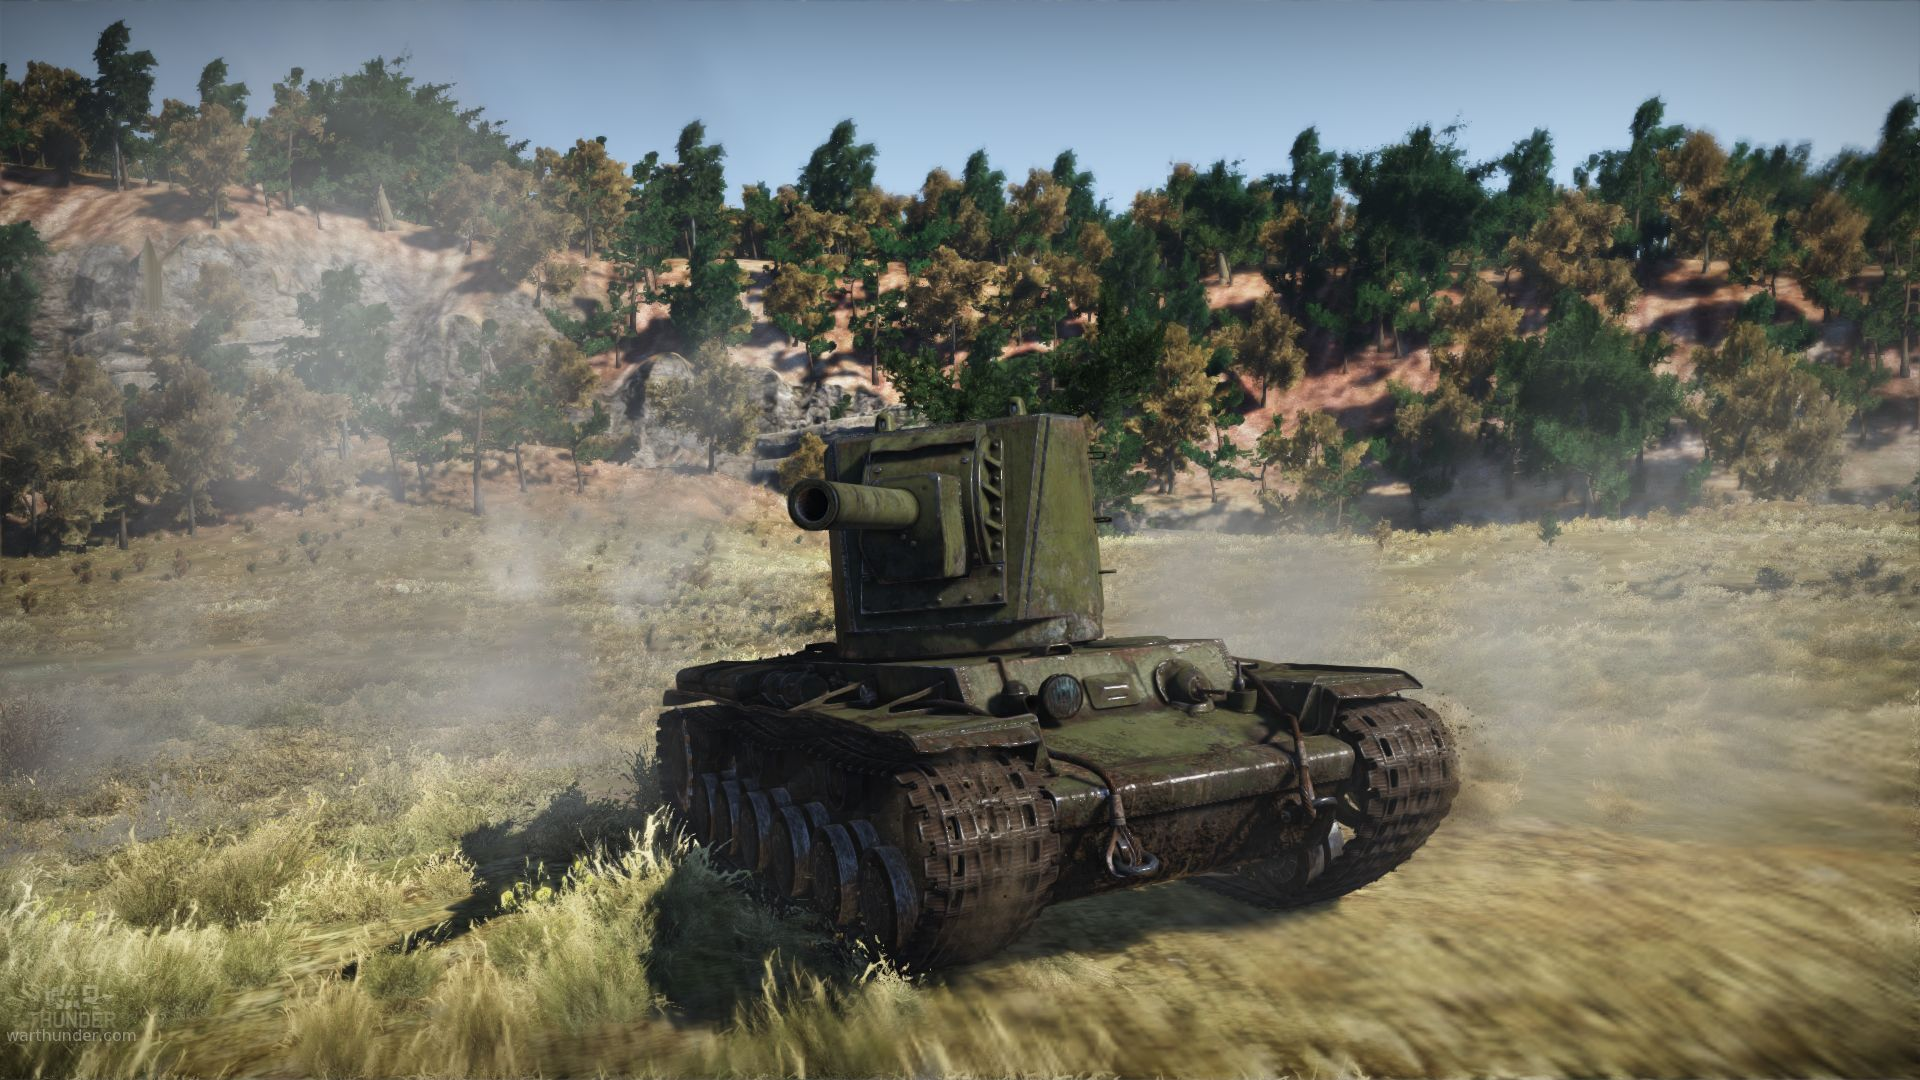 Levelling up your tank crew adds multiple gameplay layers, bringing you back for more.